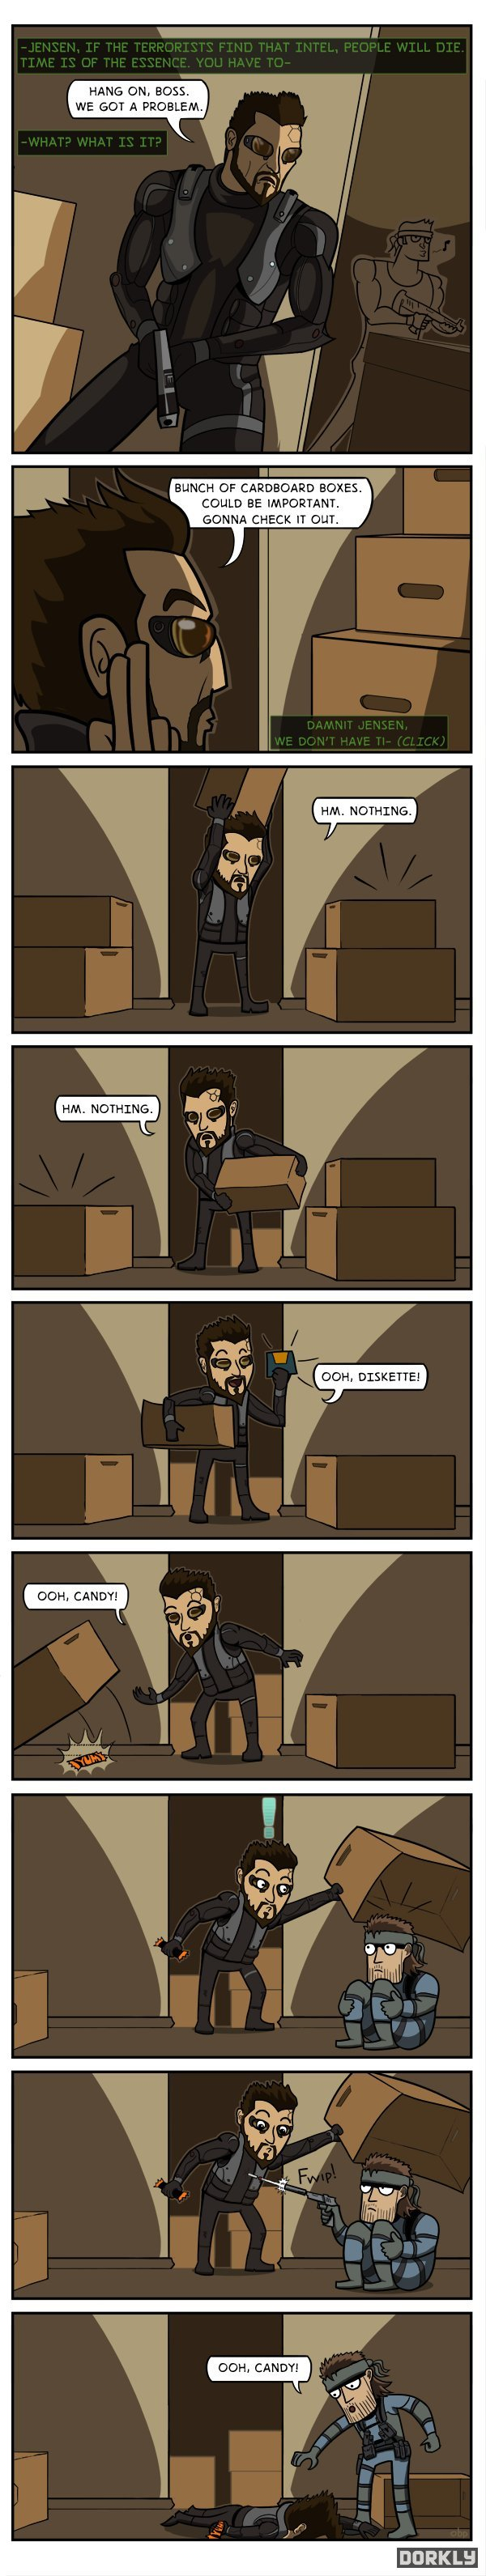 Box. credits to dorkly. HANG LAW! 3055. WE GOT A PROBLEM. BUNCH BF CARDBOARD EDI! -'.ES. COULD BE Ti% Starch% GONNA CHECK IT OUT.. - 5 SECONDS LATER - omnomnomnom...